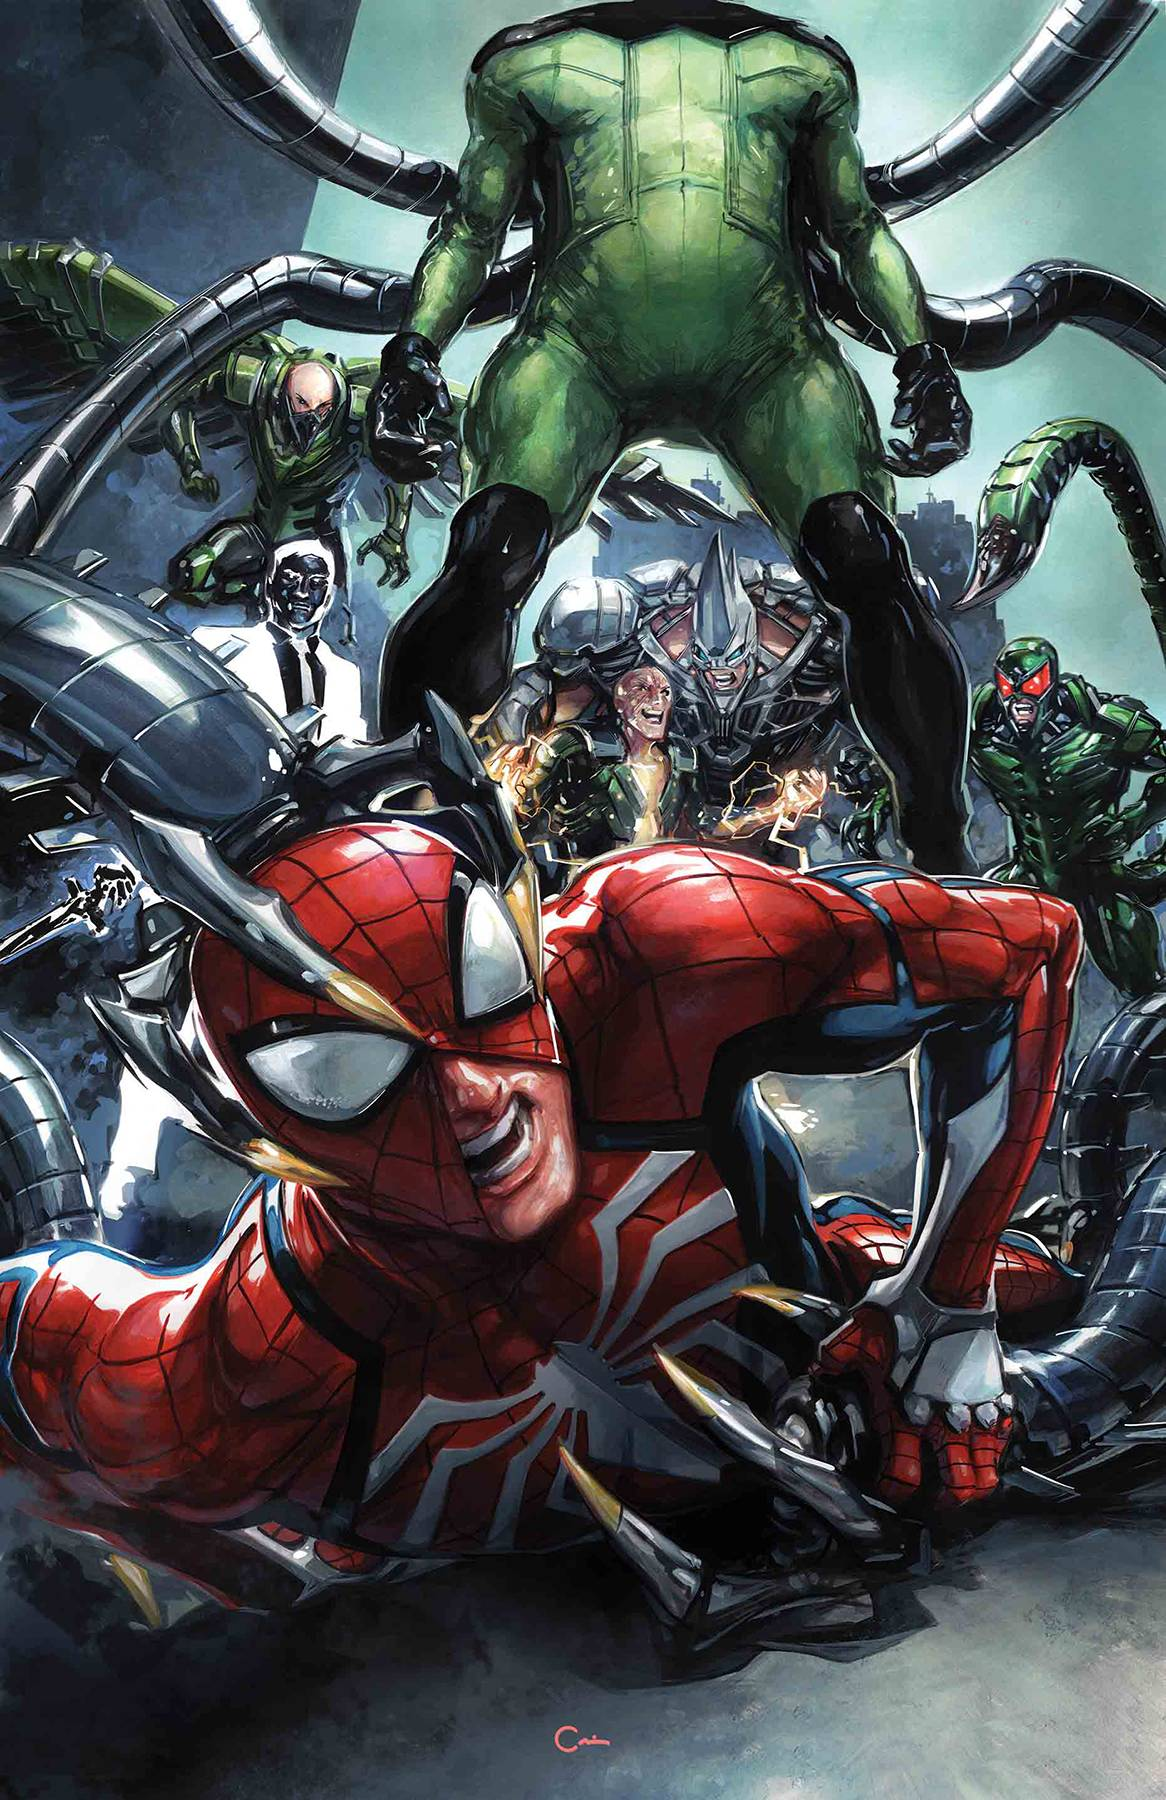 06/19/2019 SPIDER-MAN CITY AT WAR #4 (OF 6)